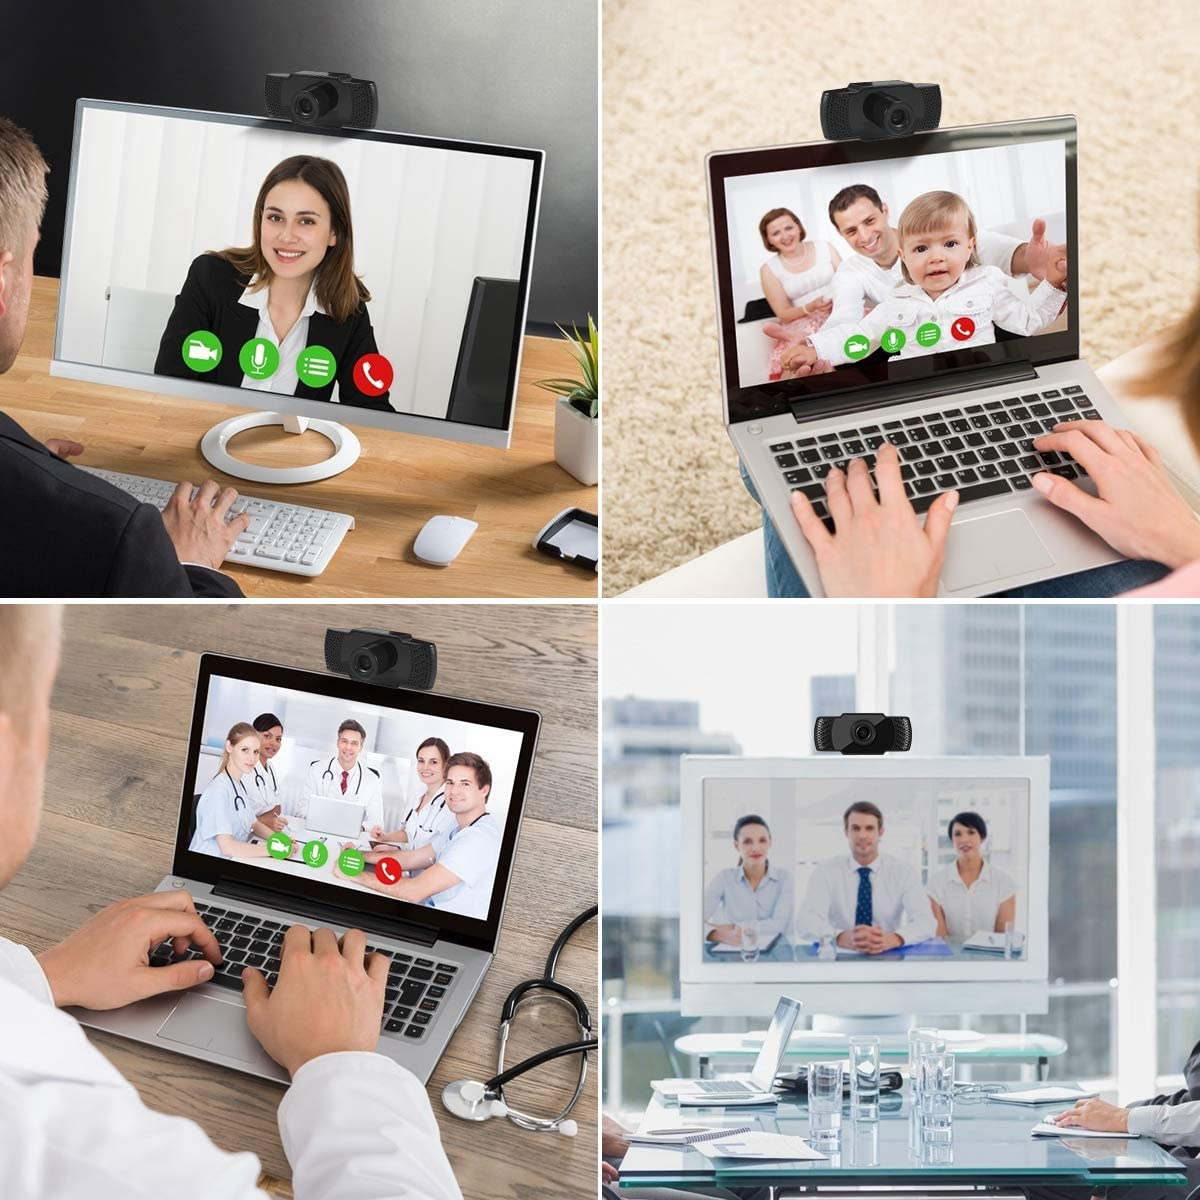 Black USB Desktop /& Laptop Live Streaming Widescreen Built-in Mic Mini HD Video Webcam for Skype Video Calling,Online Work,Conferencing,Recording and Game Live CharmUO 1080P Webcam with Microphone